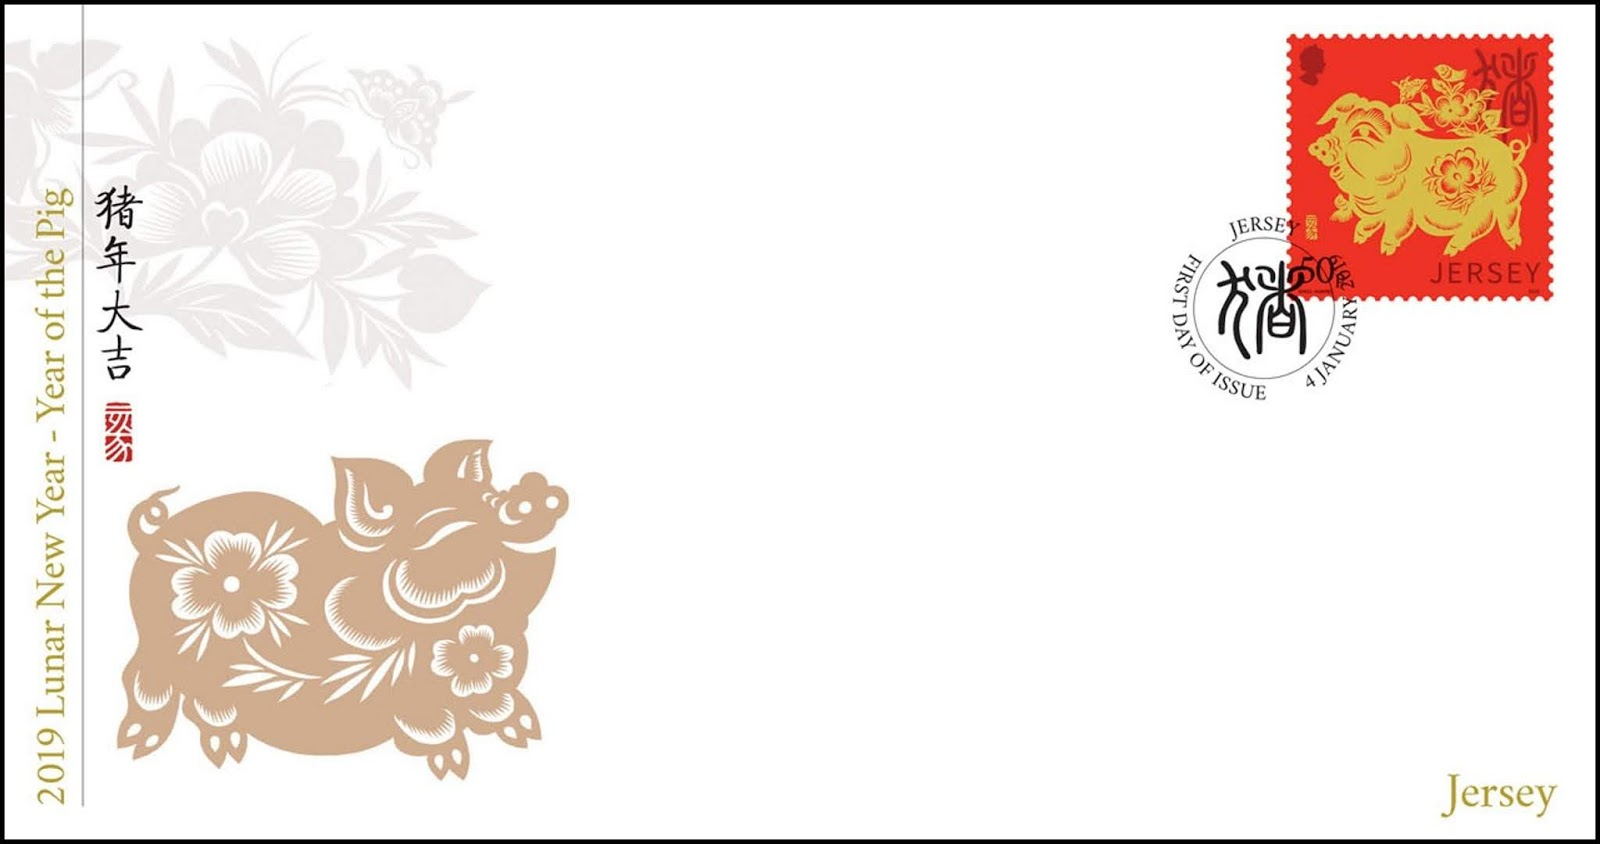 Jersey - Year of the Pig (January 4, 2019) first day cover